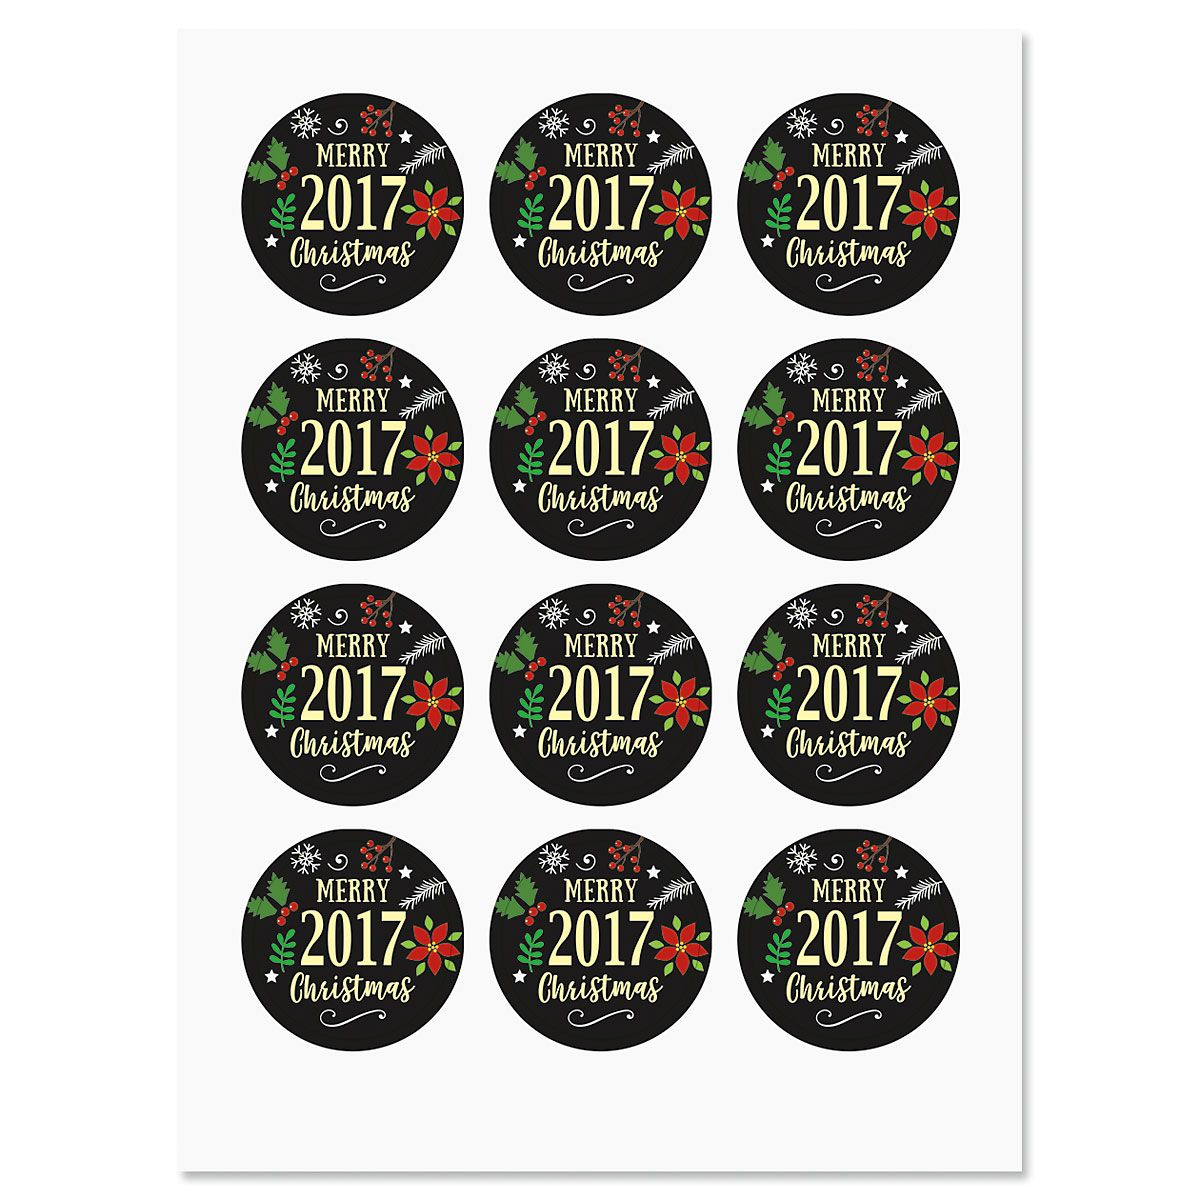 Deluxe Foil 2017 Merry Christmas Stickers